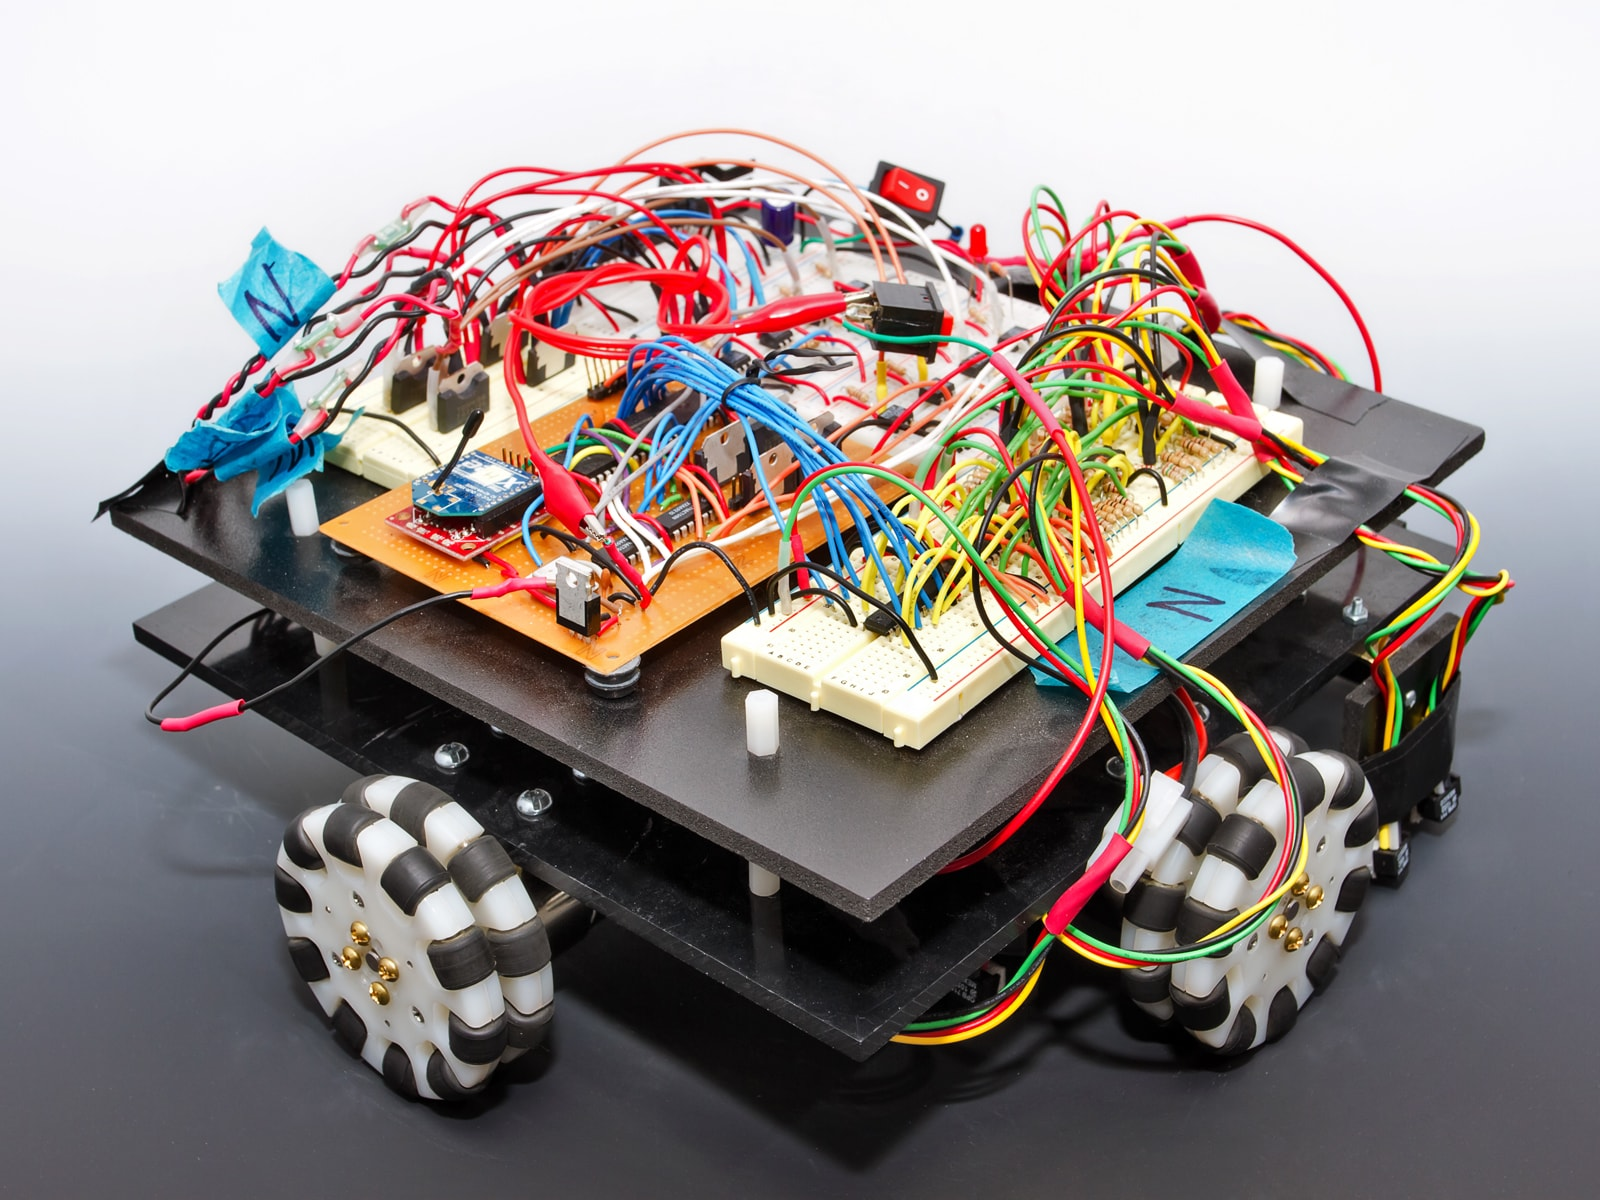 A square robot with exposed circuitry and black and white wheels.